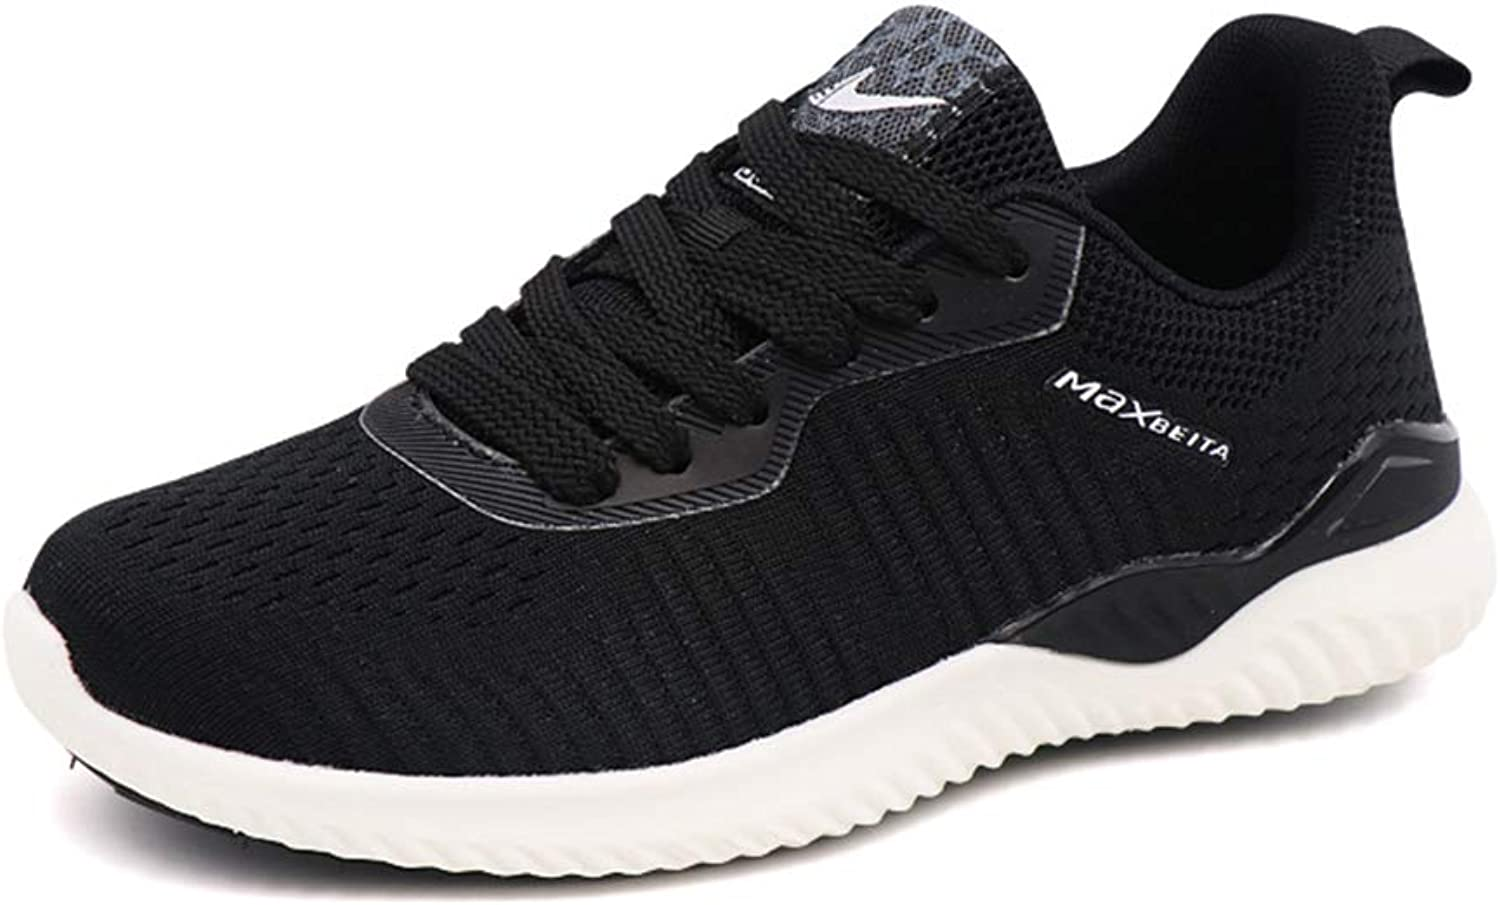 Beita Breathable Woman Casual Running shoes Outdoor Athletic Walking Sneakers Professional Sport shoes Anti Slip Black White